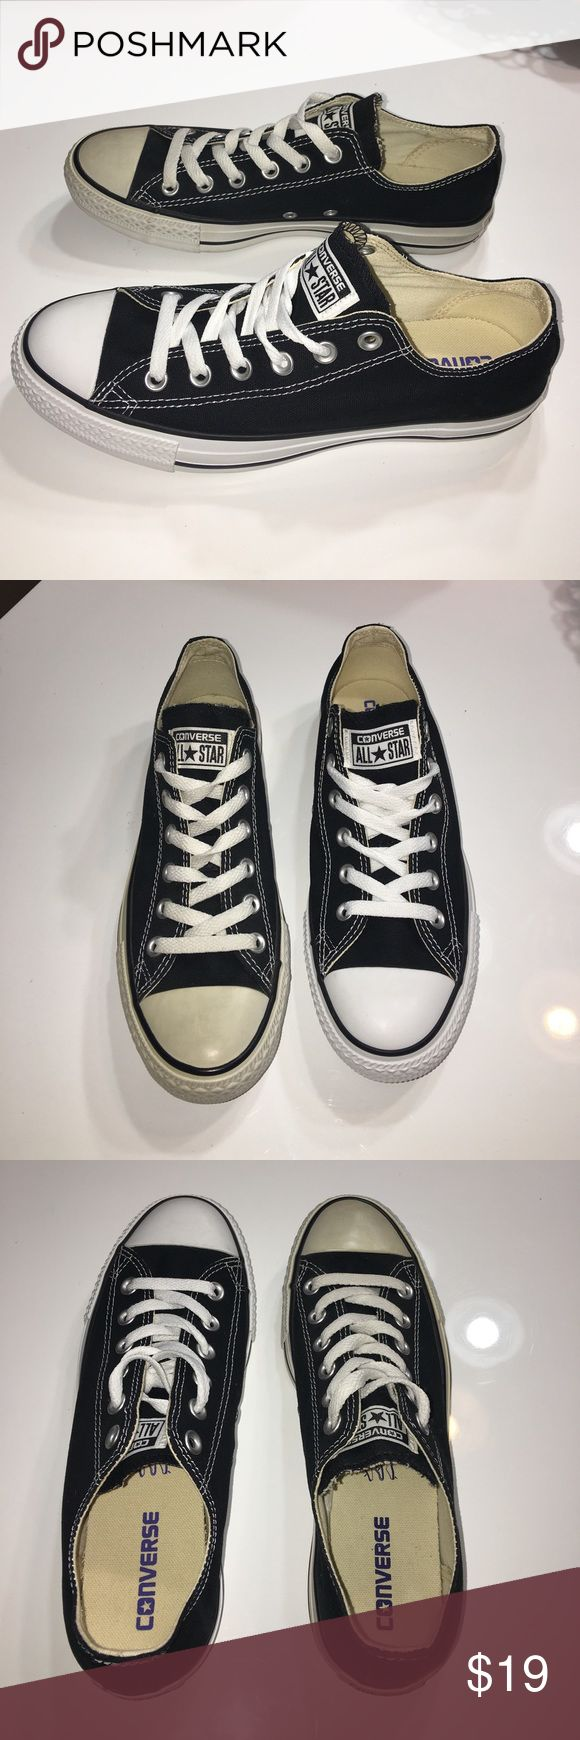 New Defect Converse black sneakers tennis shoes 9 New with Defect authentic Converse black sneakers tennis shoes sz 9- one shoe was used as window display and rubber trim has some yellowing. SOLD AS IS FINAL SALE PRICE PLEASE NO OFFERS Converse Shoes Sneakers